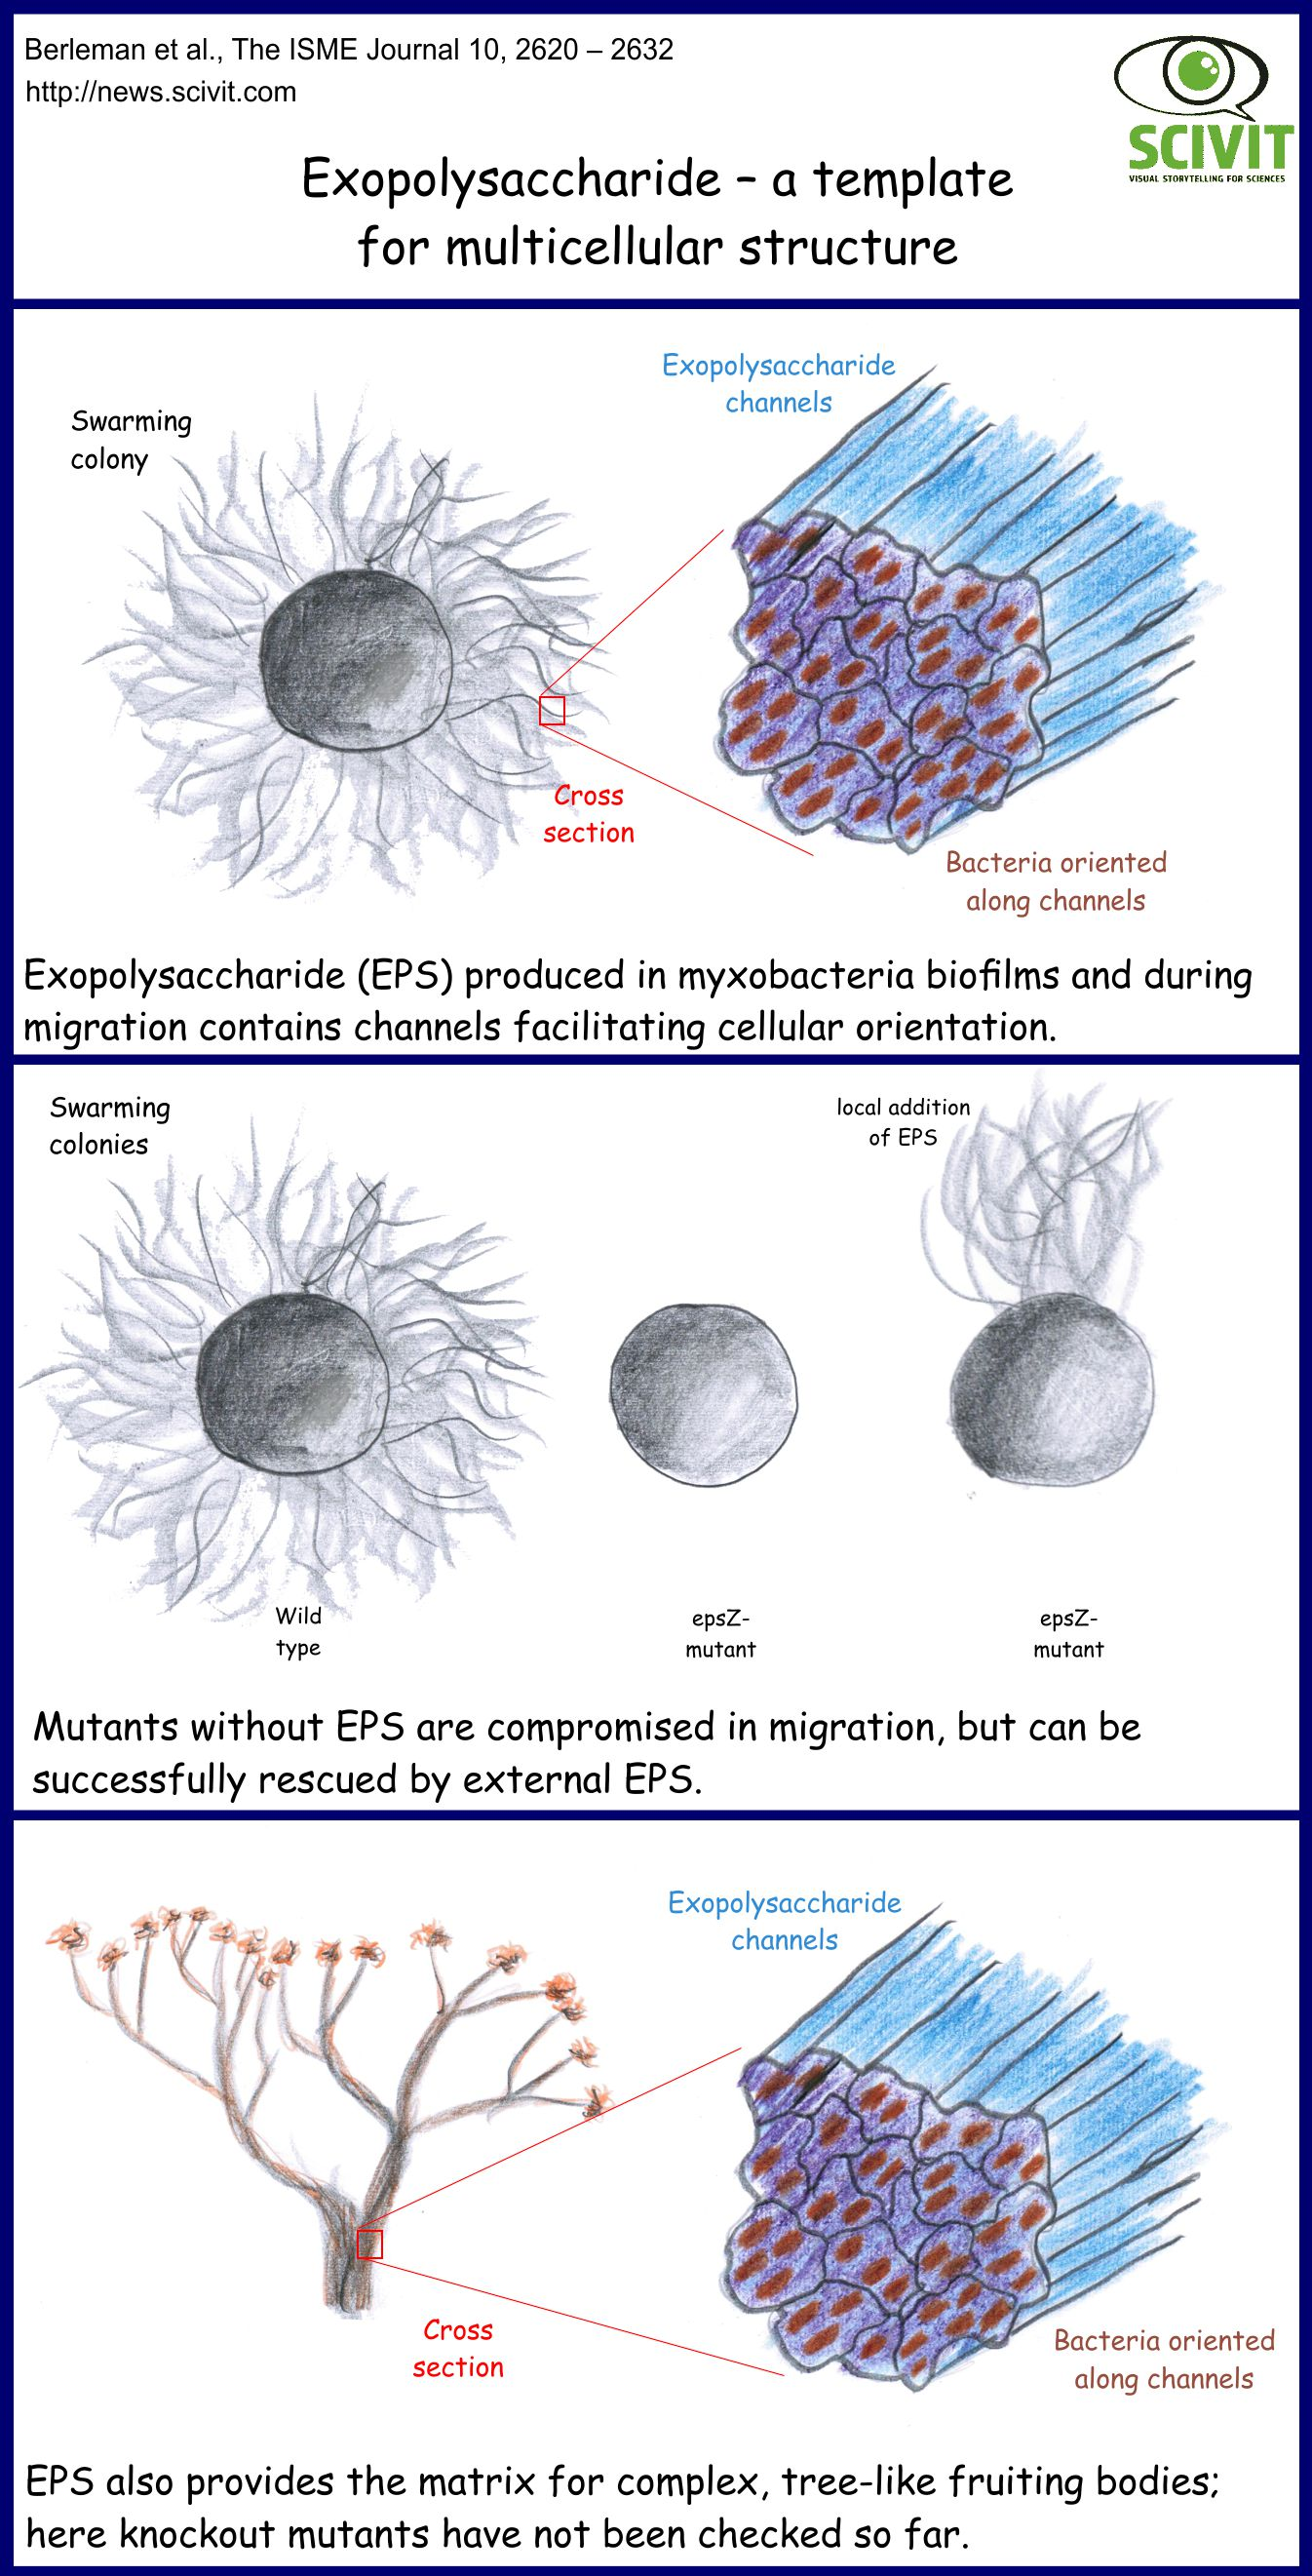 Exopolysaccharide – a template for multicellular structures